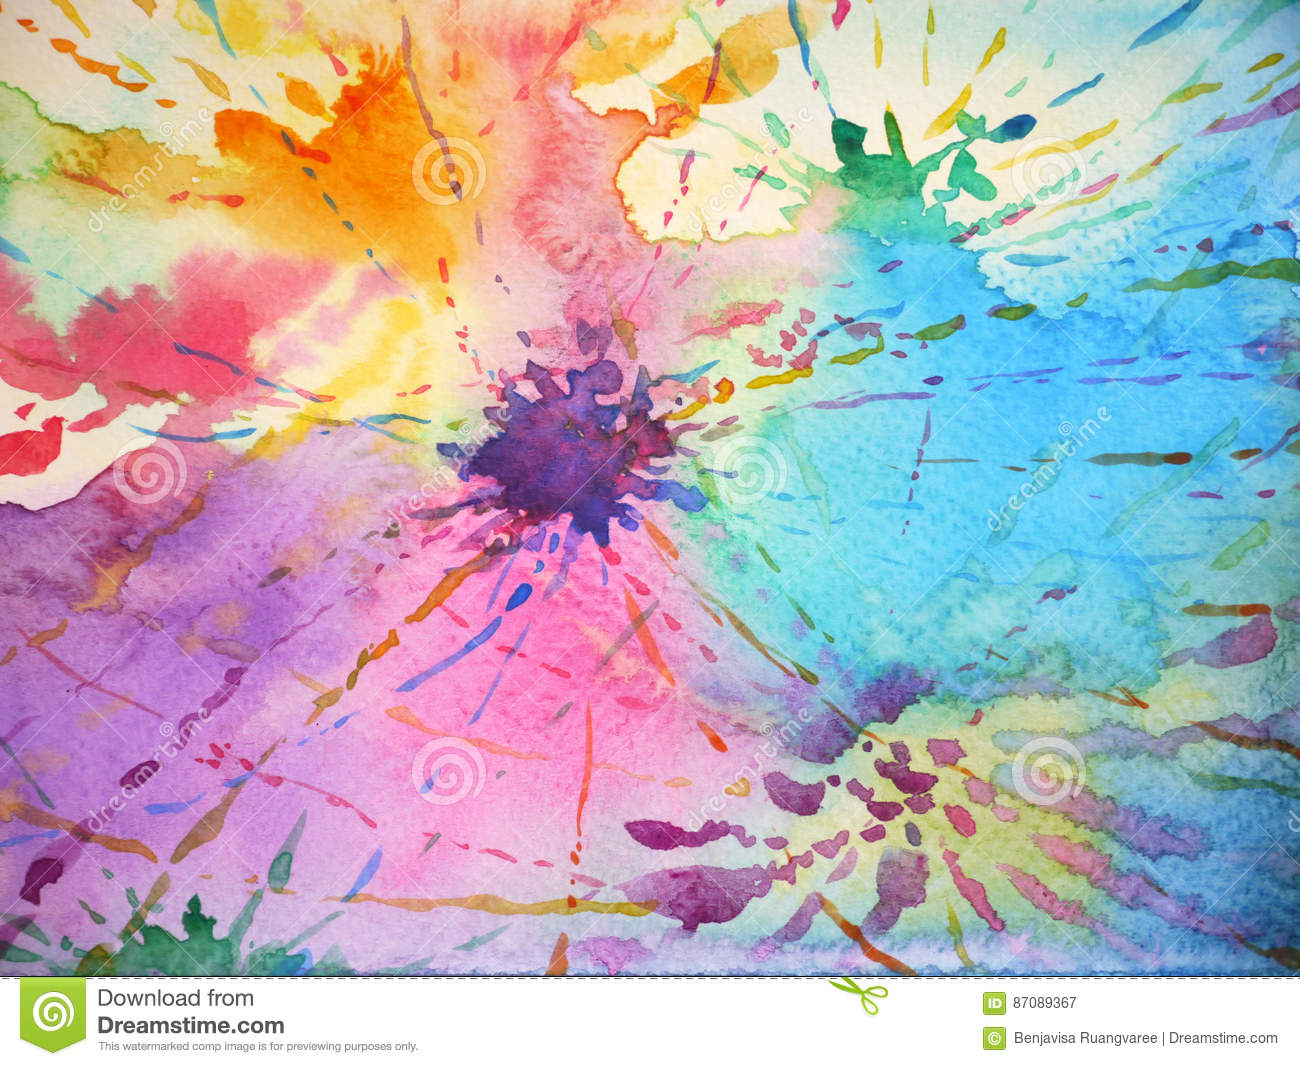 Color Painting Watercolor Splash Background Color Clipart: Colorful Background Splash Color Drop Painting, Design